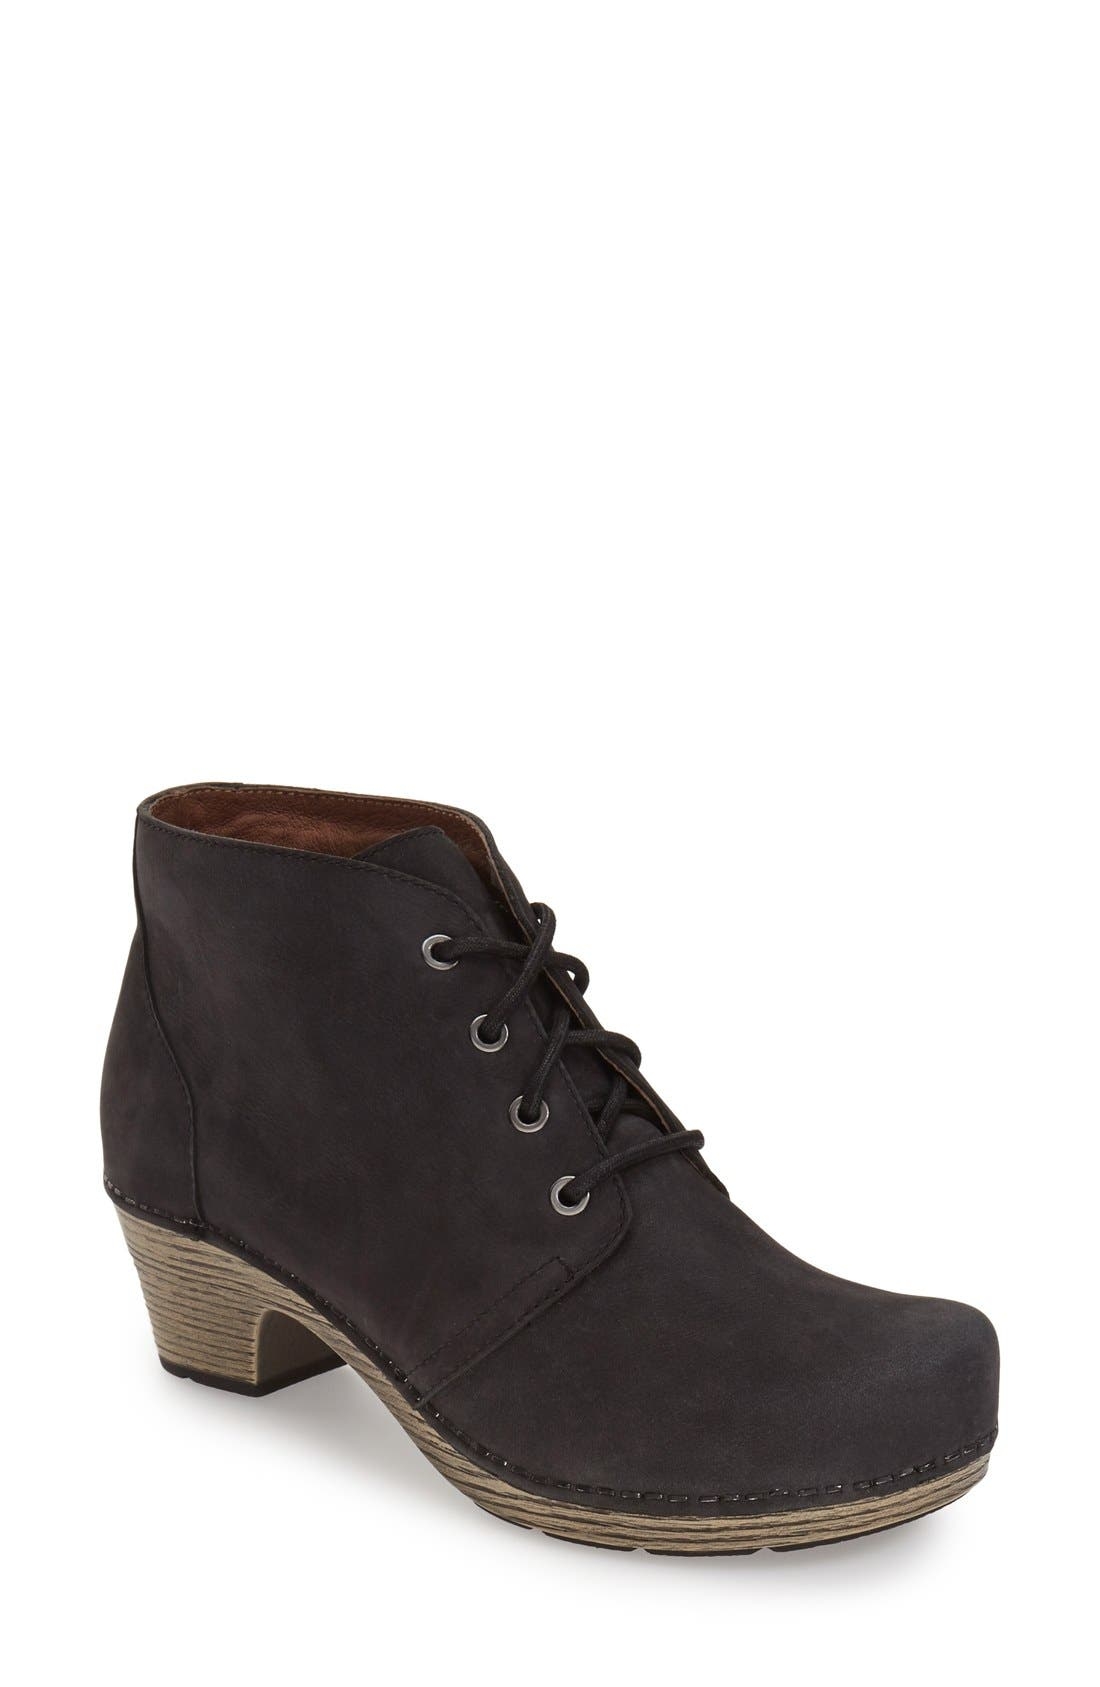 Main Image - Dansko 'Meena' Lace-Up Bootie (Women)